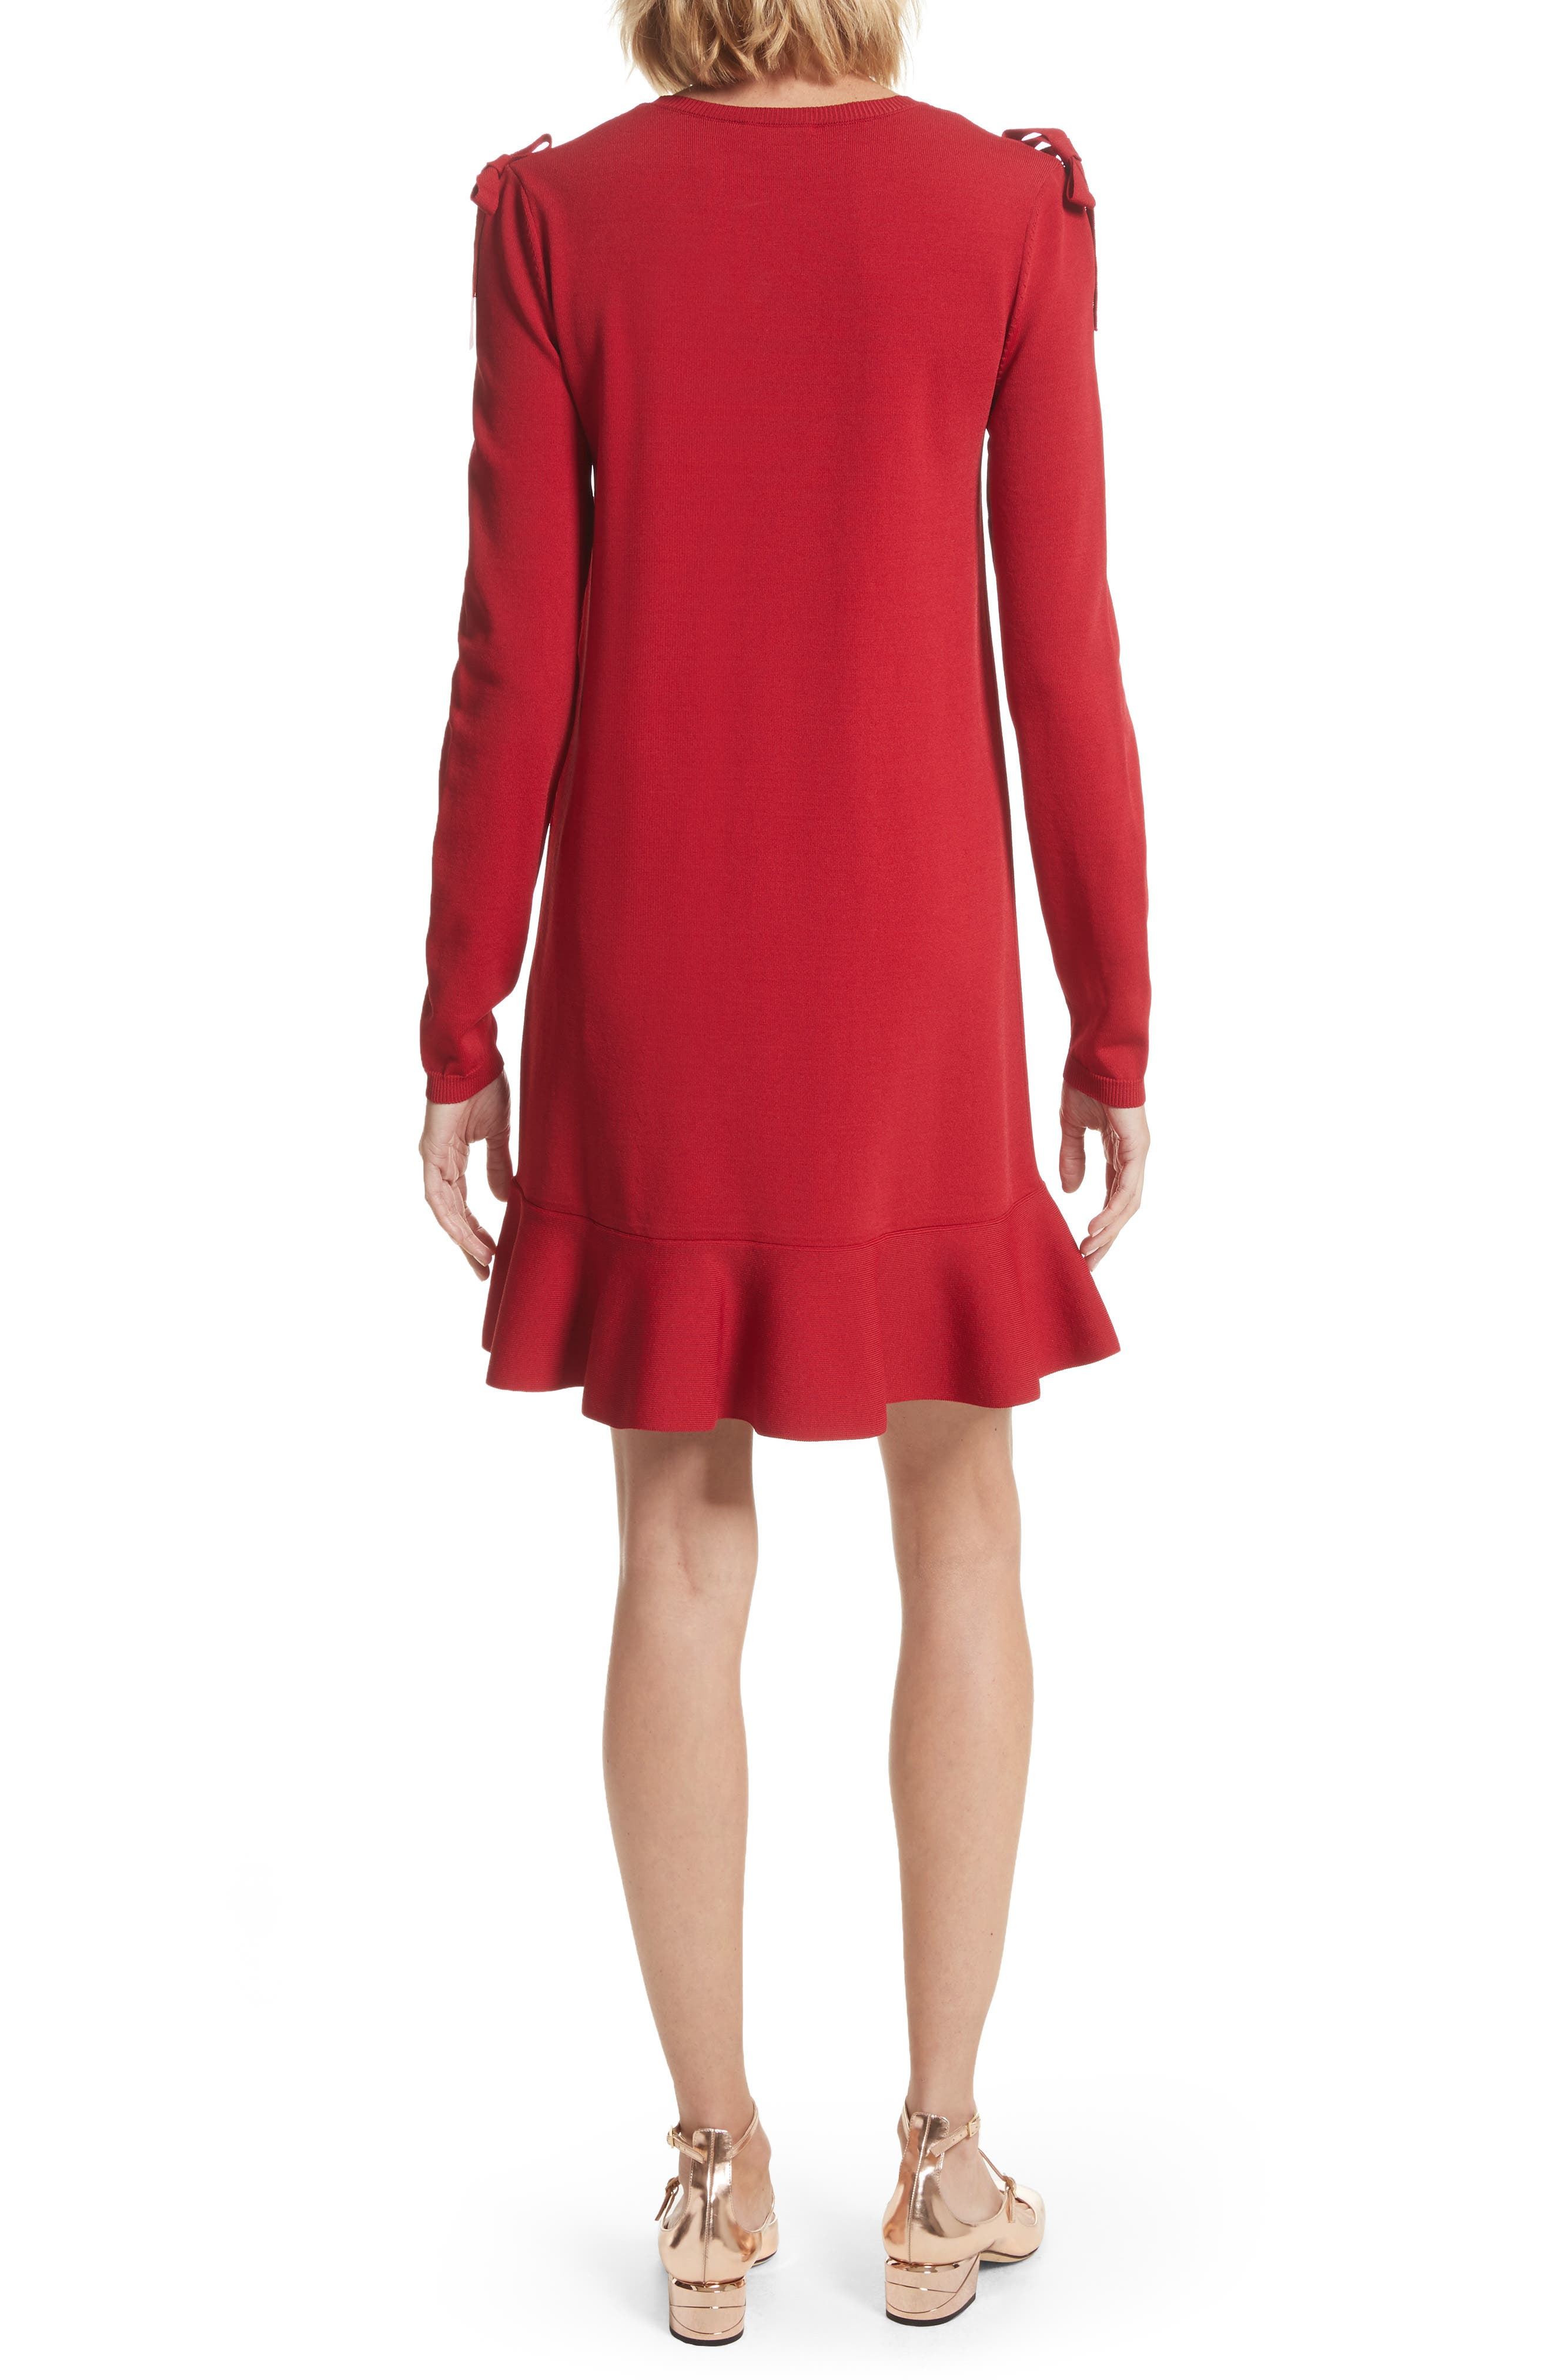 Bow Knit Dress,                             Alternate thumbnail 2, color,                             Lacca